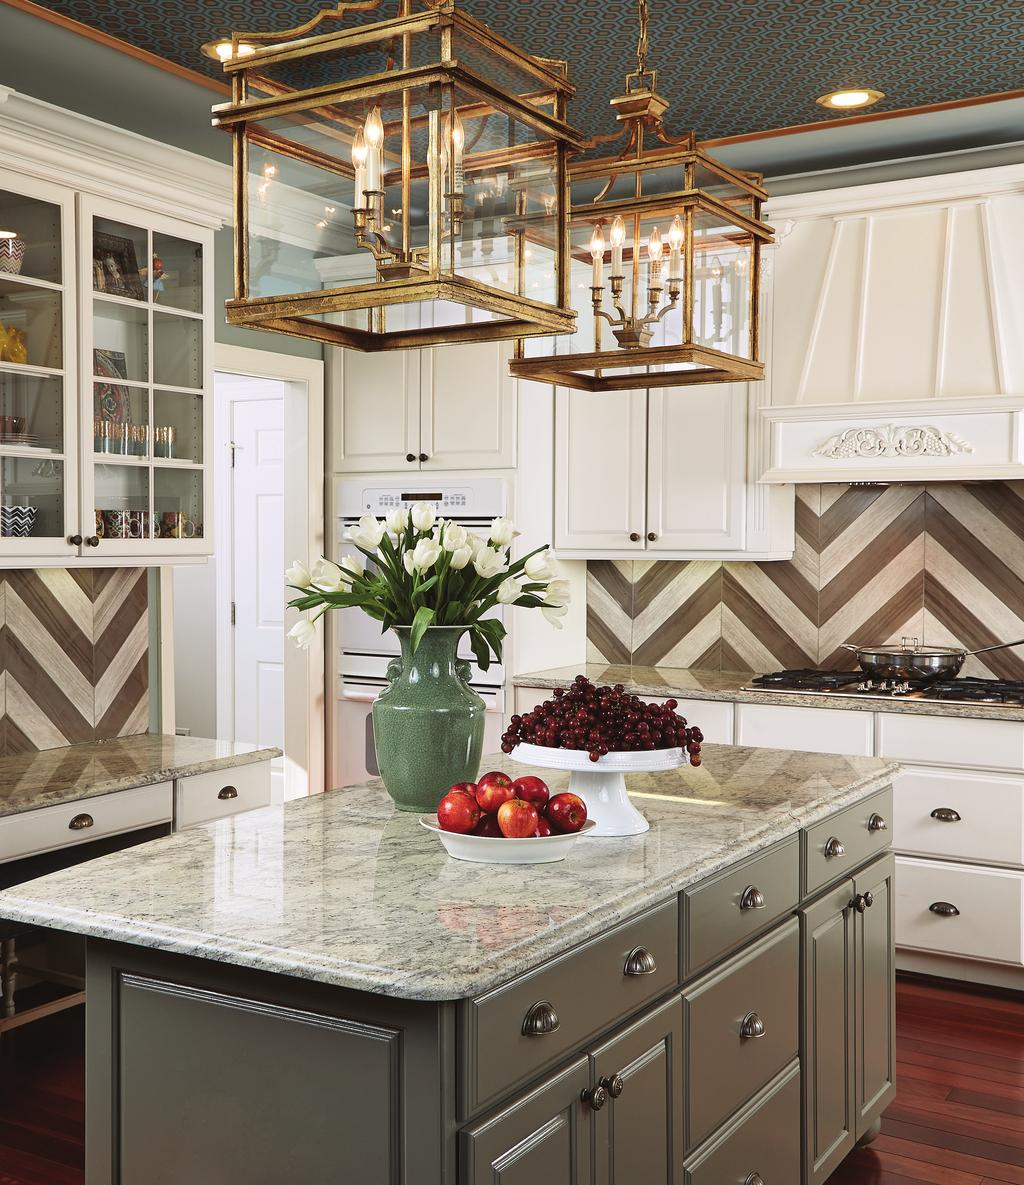 The kitchen s cabinetry and countertops were retained, but the chevron backsplash (which echoes the pattern of the flame-stitch fabric in the great room) was added, as was the ceiling